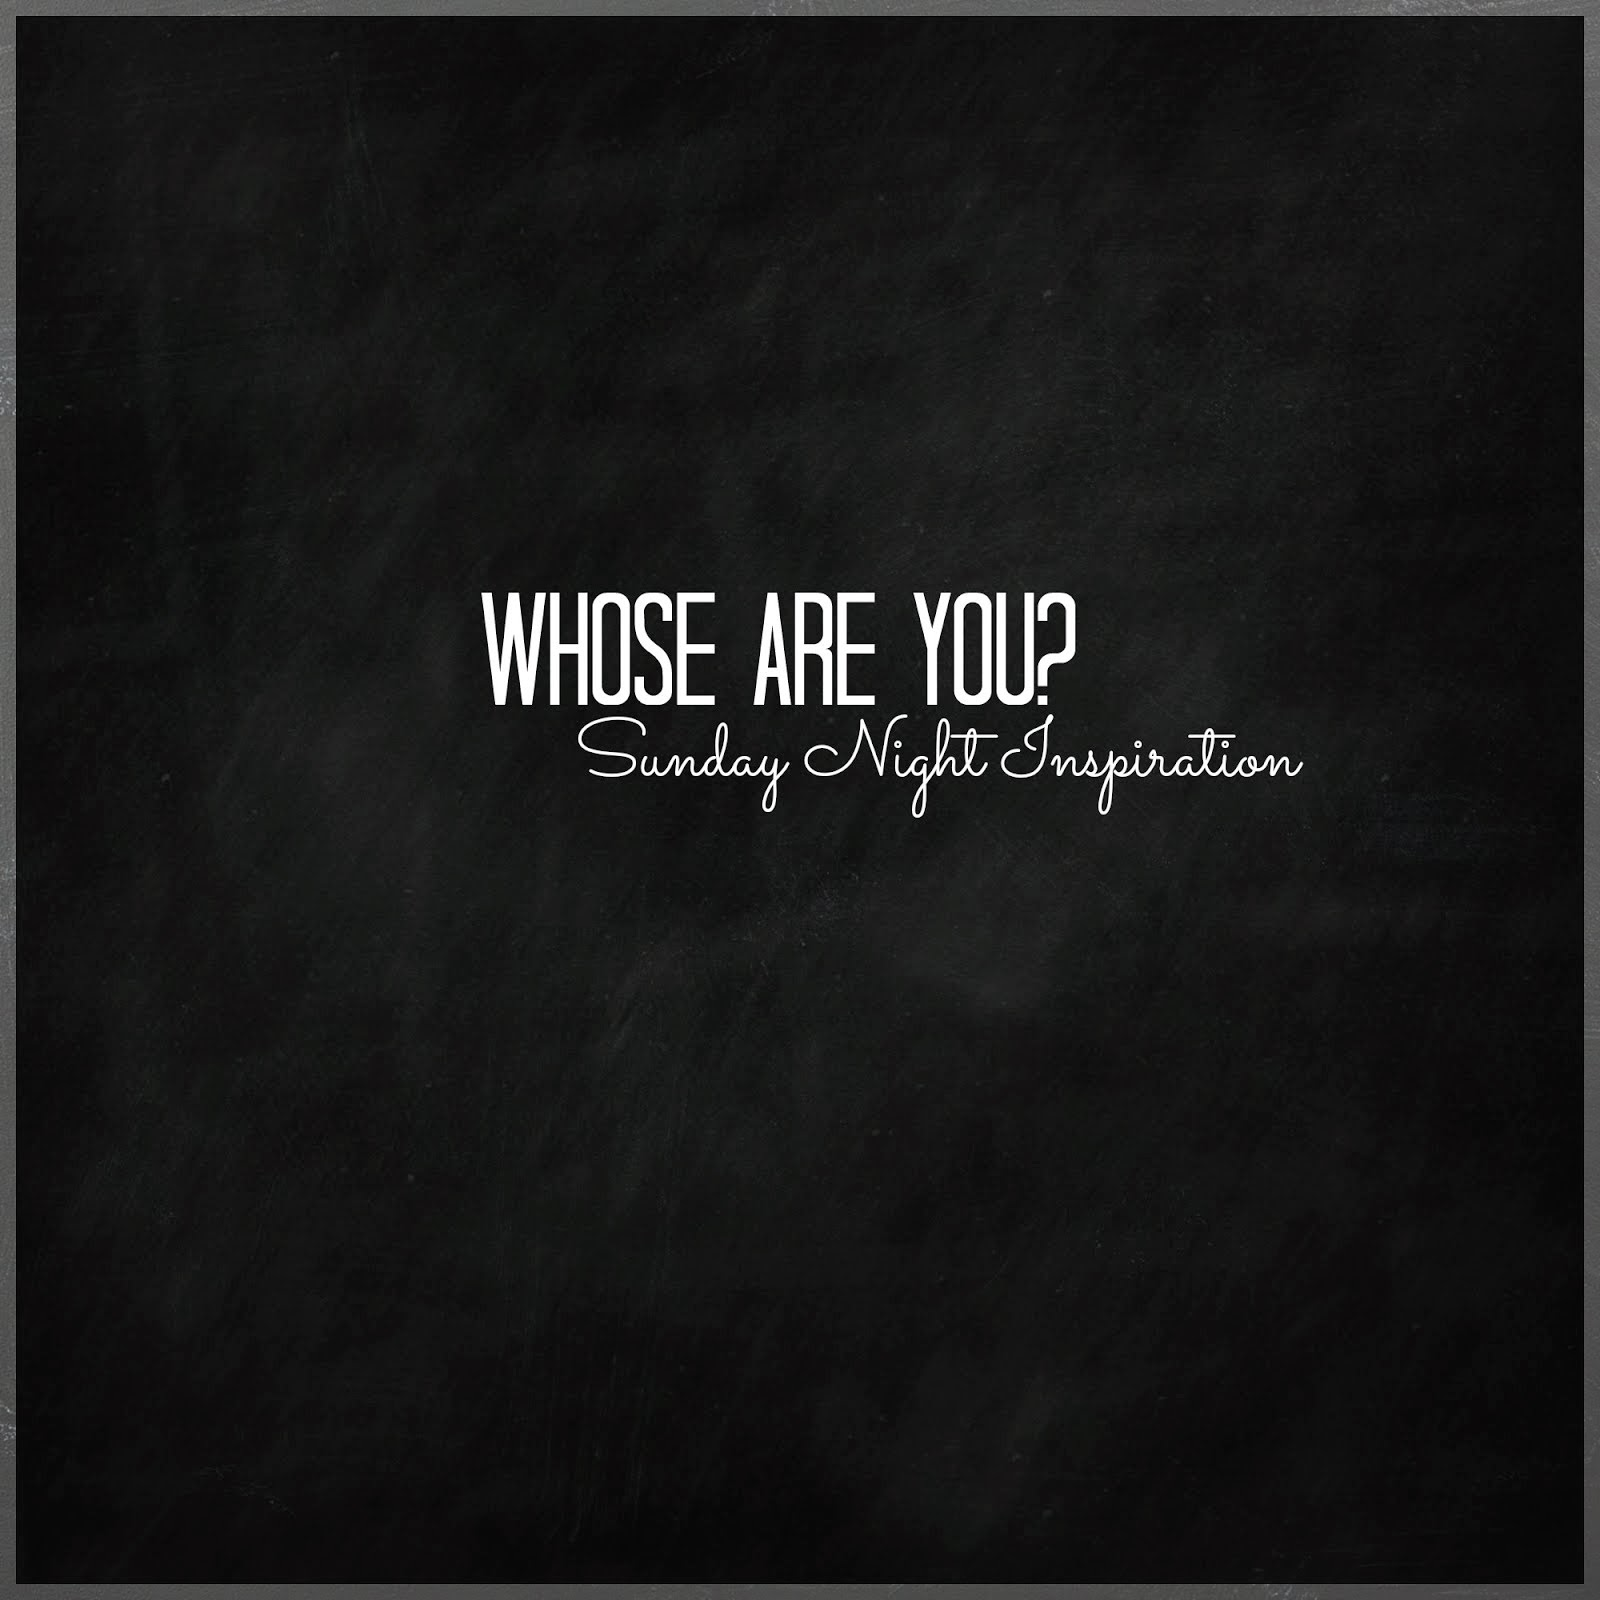 Sunday Night Inspiration | Whose Are You?